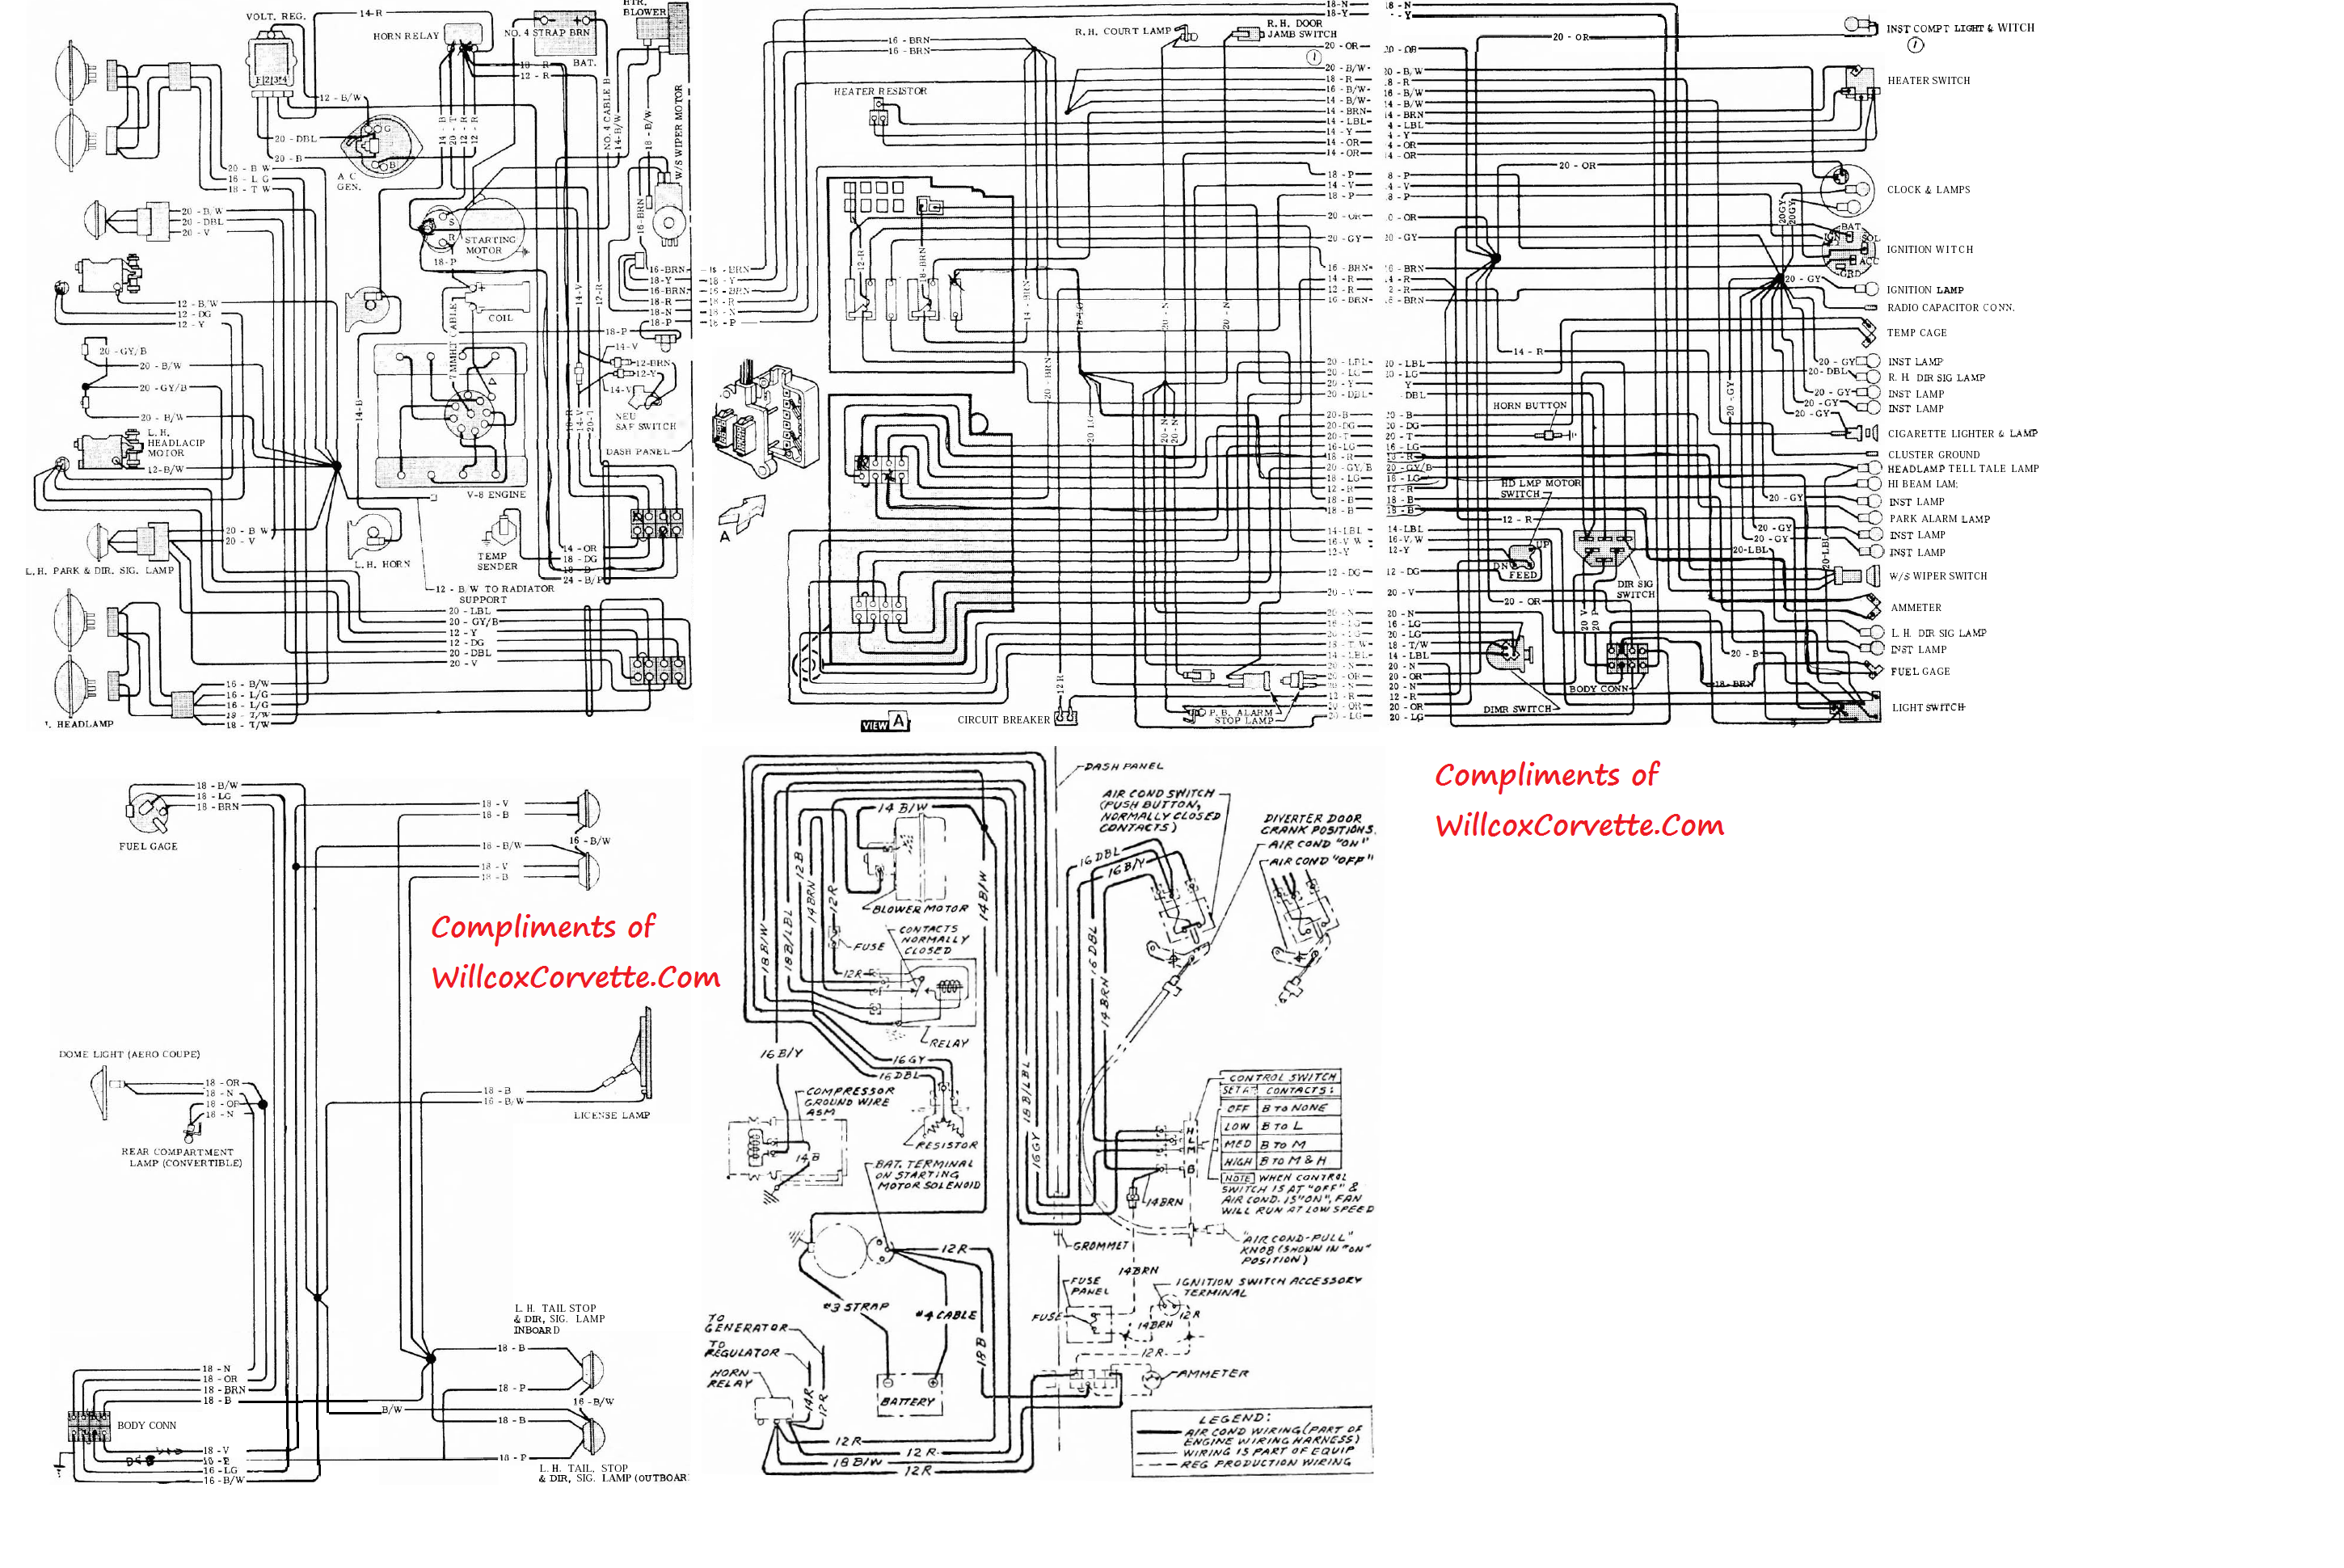 1974 corvette wiring diagram 1968 corvette wiring diagram